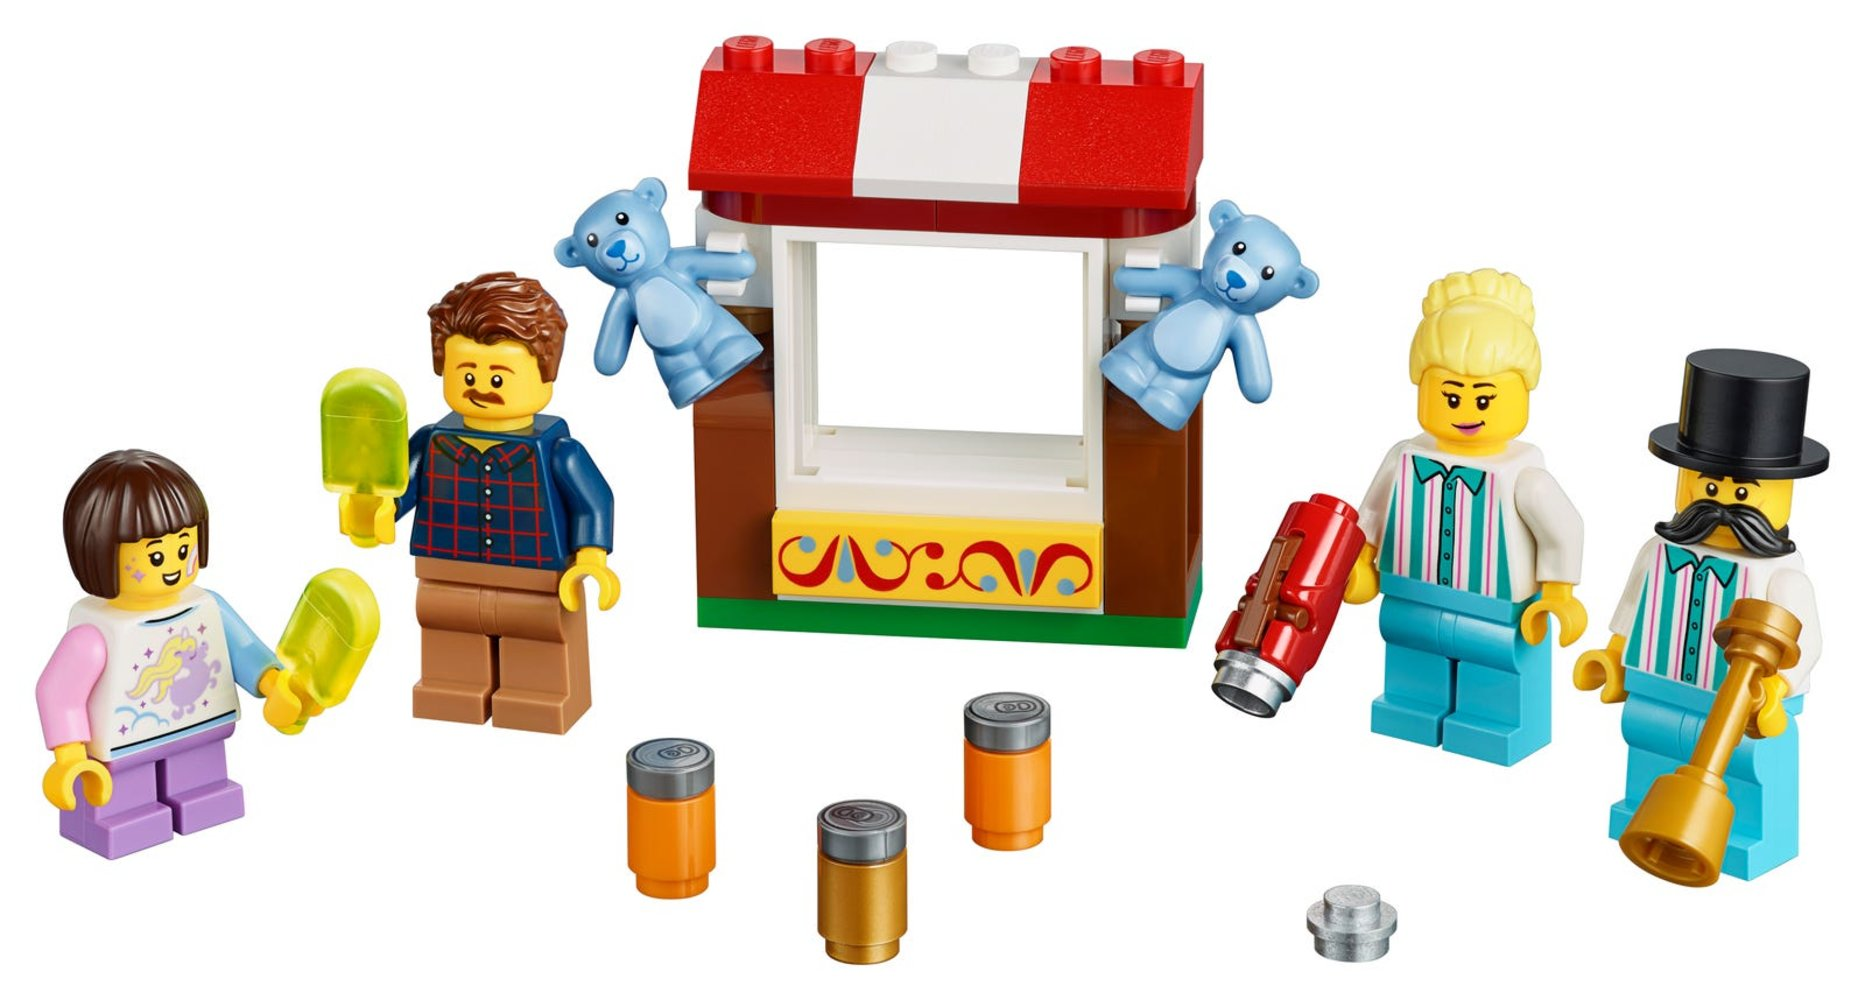 Fairground Minifigure Accessory Set